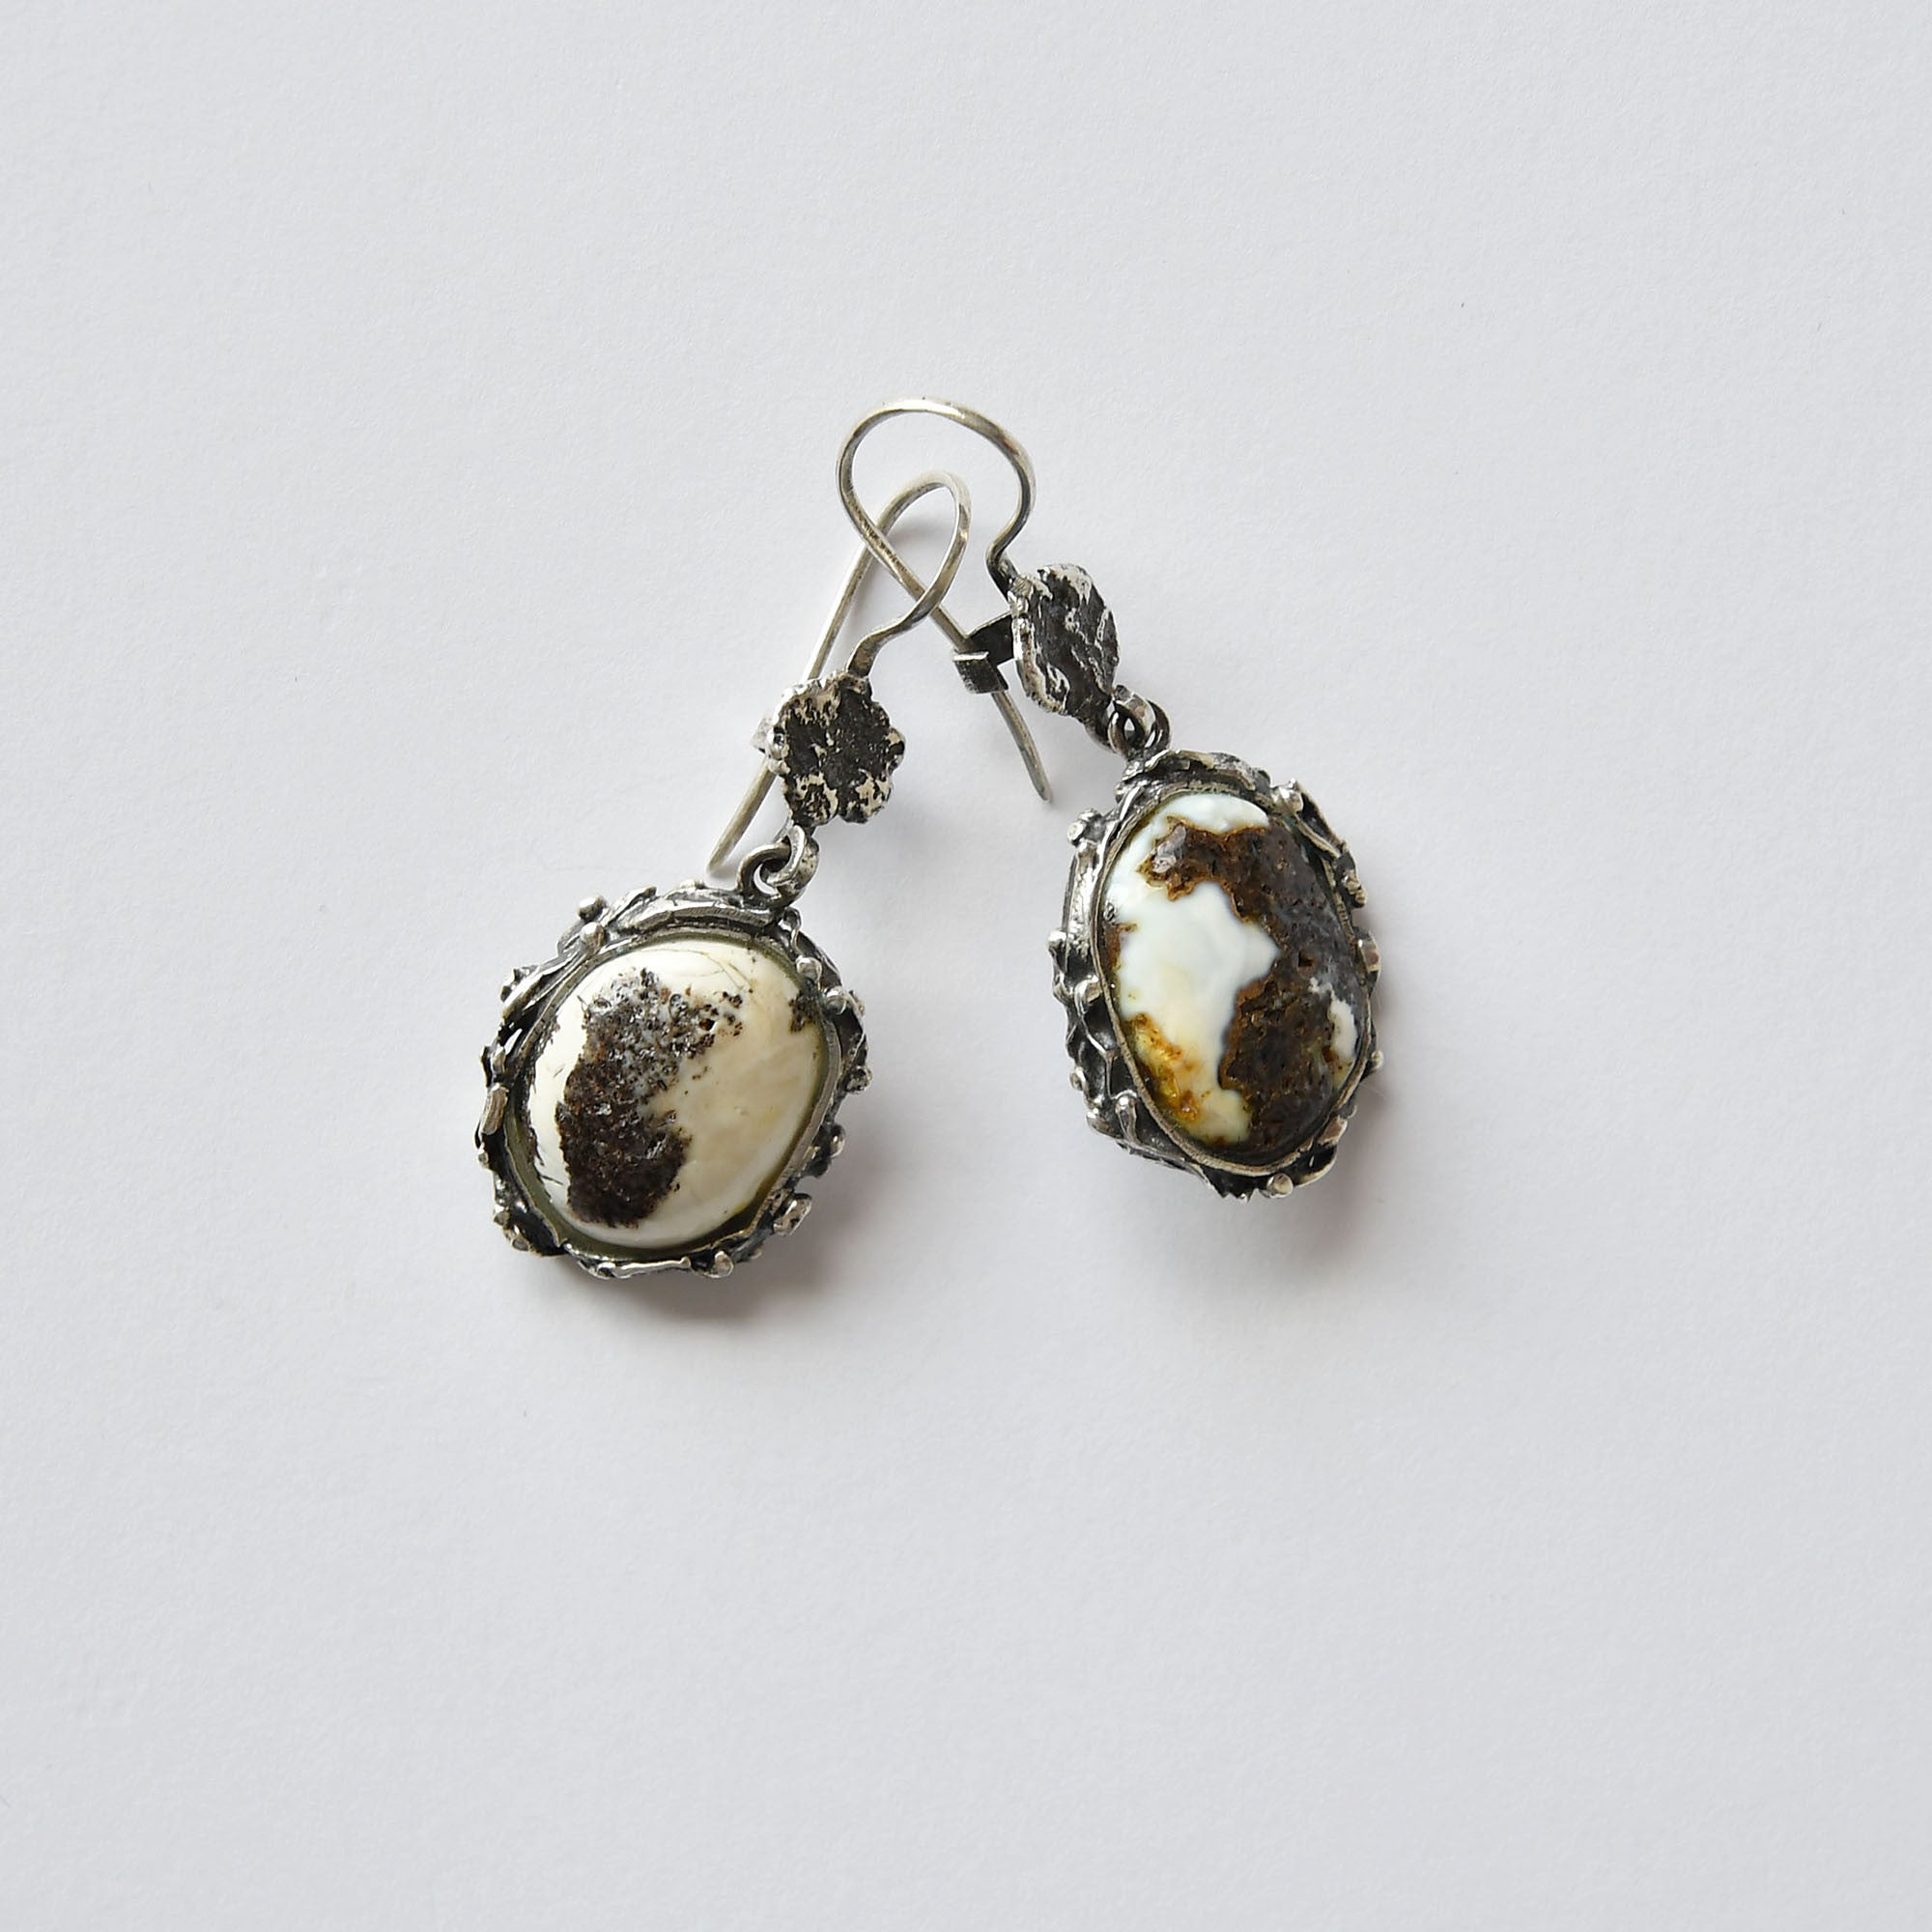 Oval earrings of white and black amber in silver setting